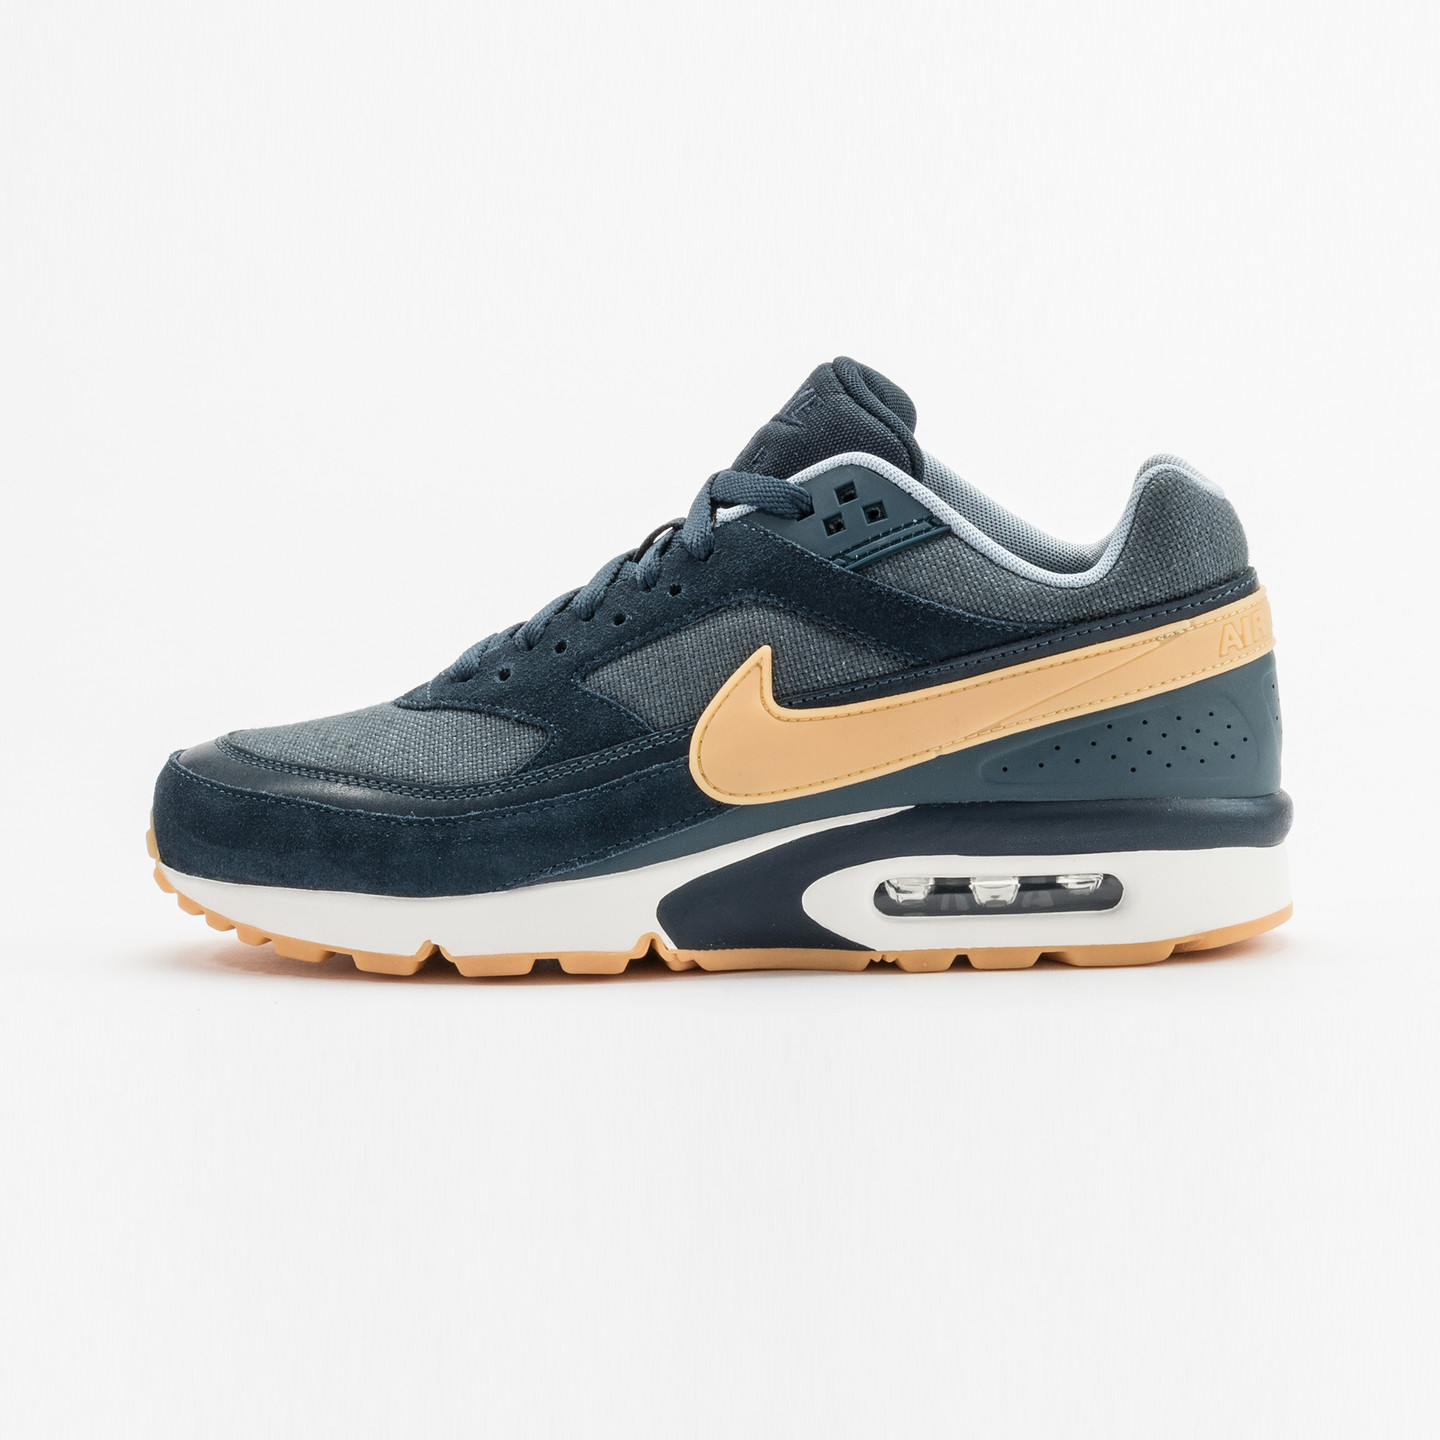 Nike Air Max BW Premium Armory Navy / Yellow / Gum 819523-401-46